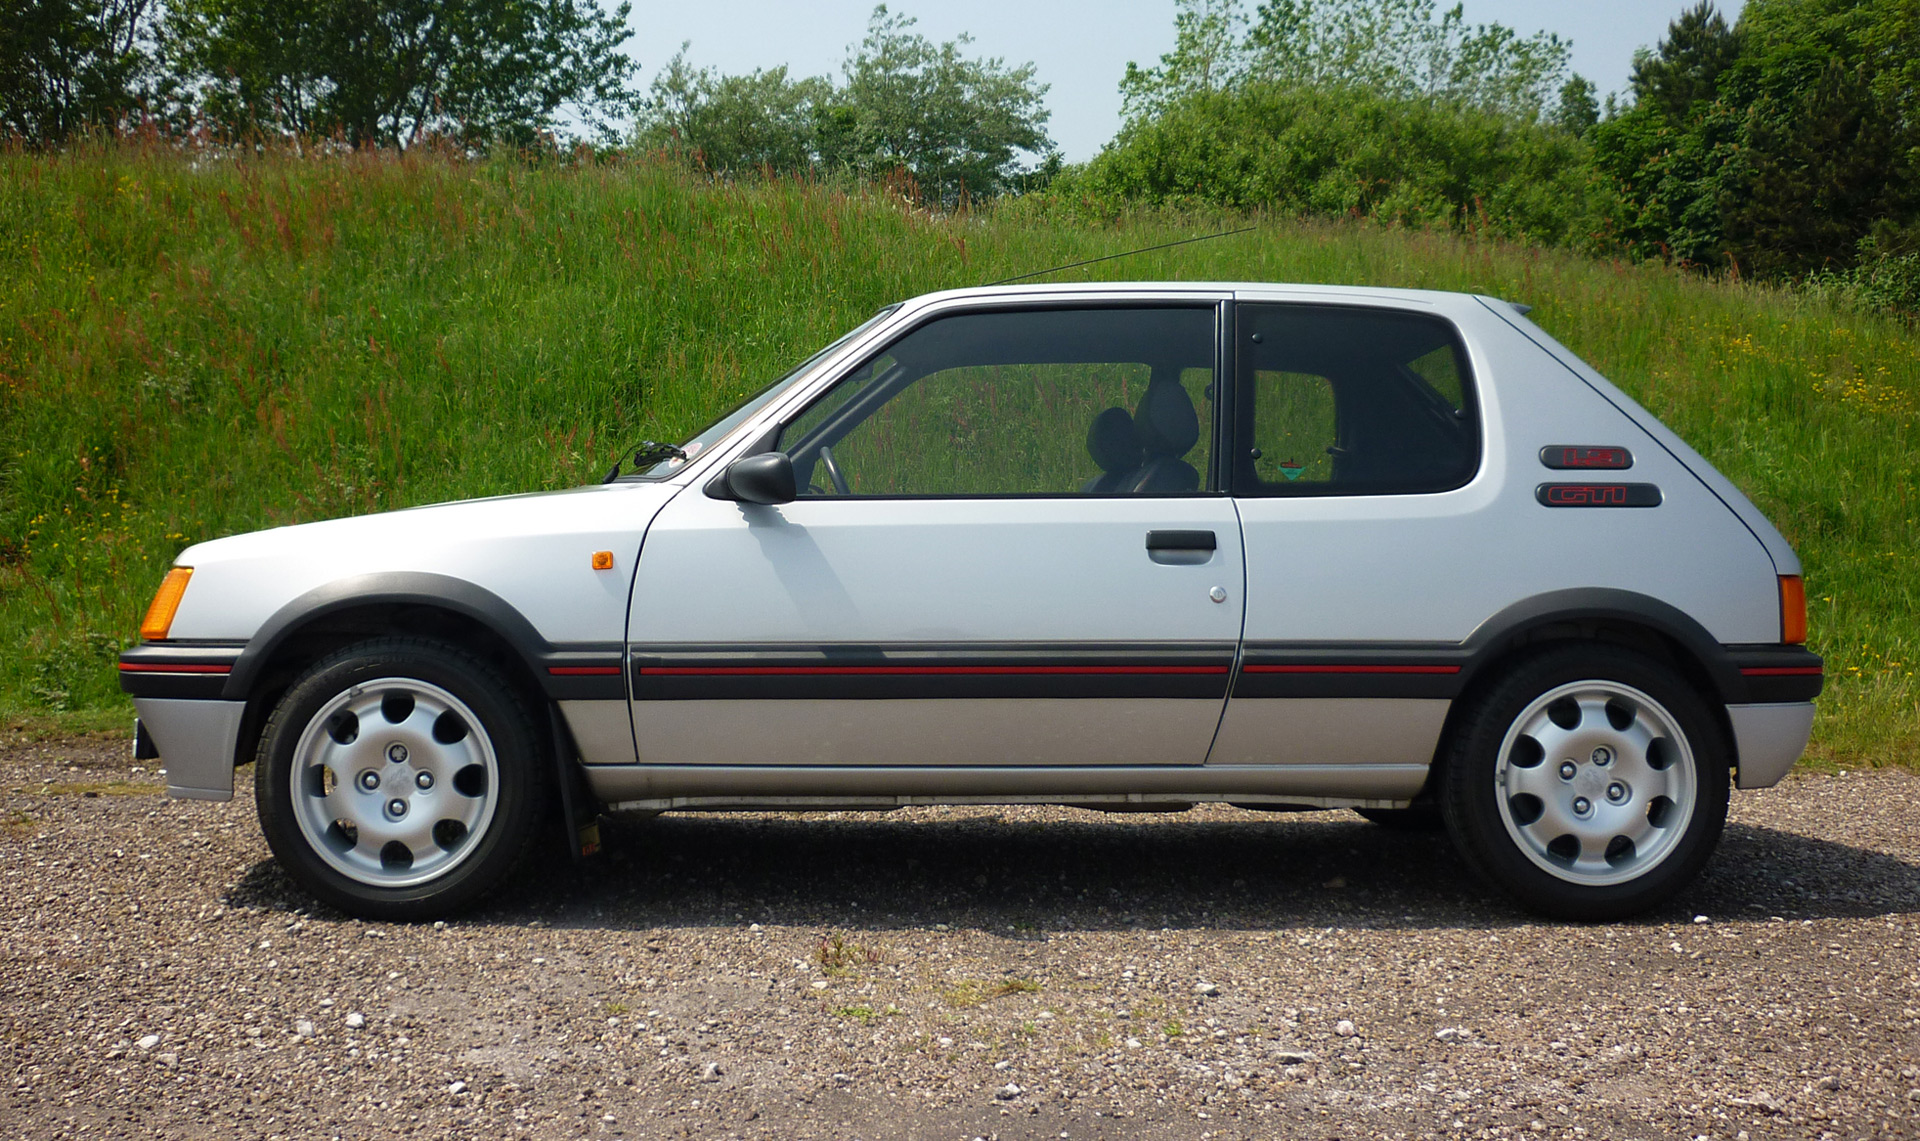 e907a95a81 1989 Peugeot 205 Gti Achieves Record Price At Classic Car Auction